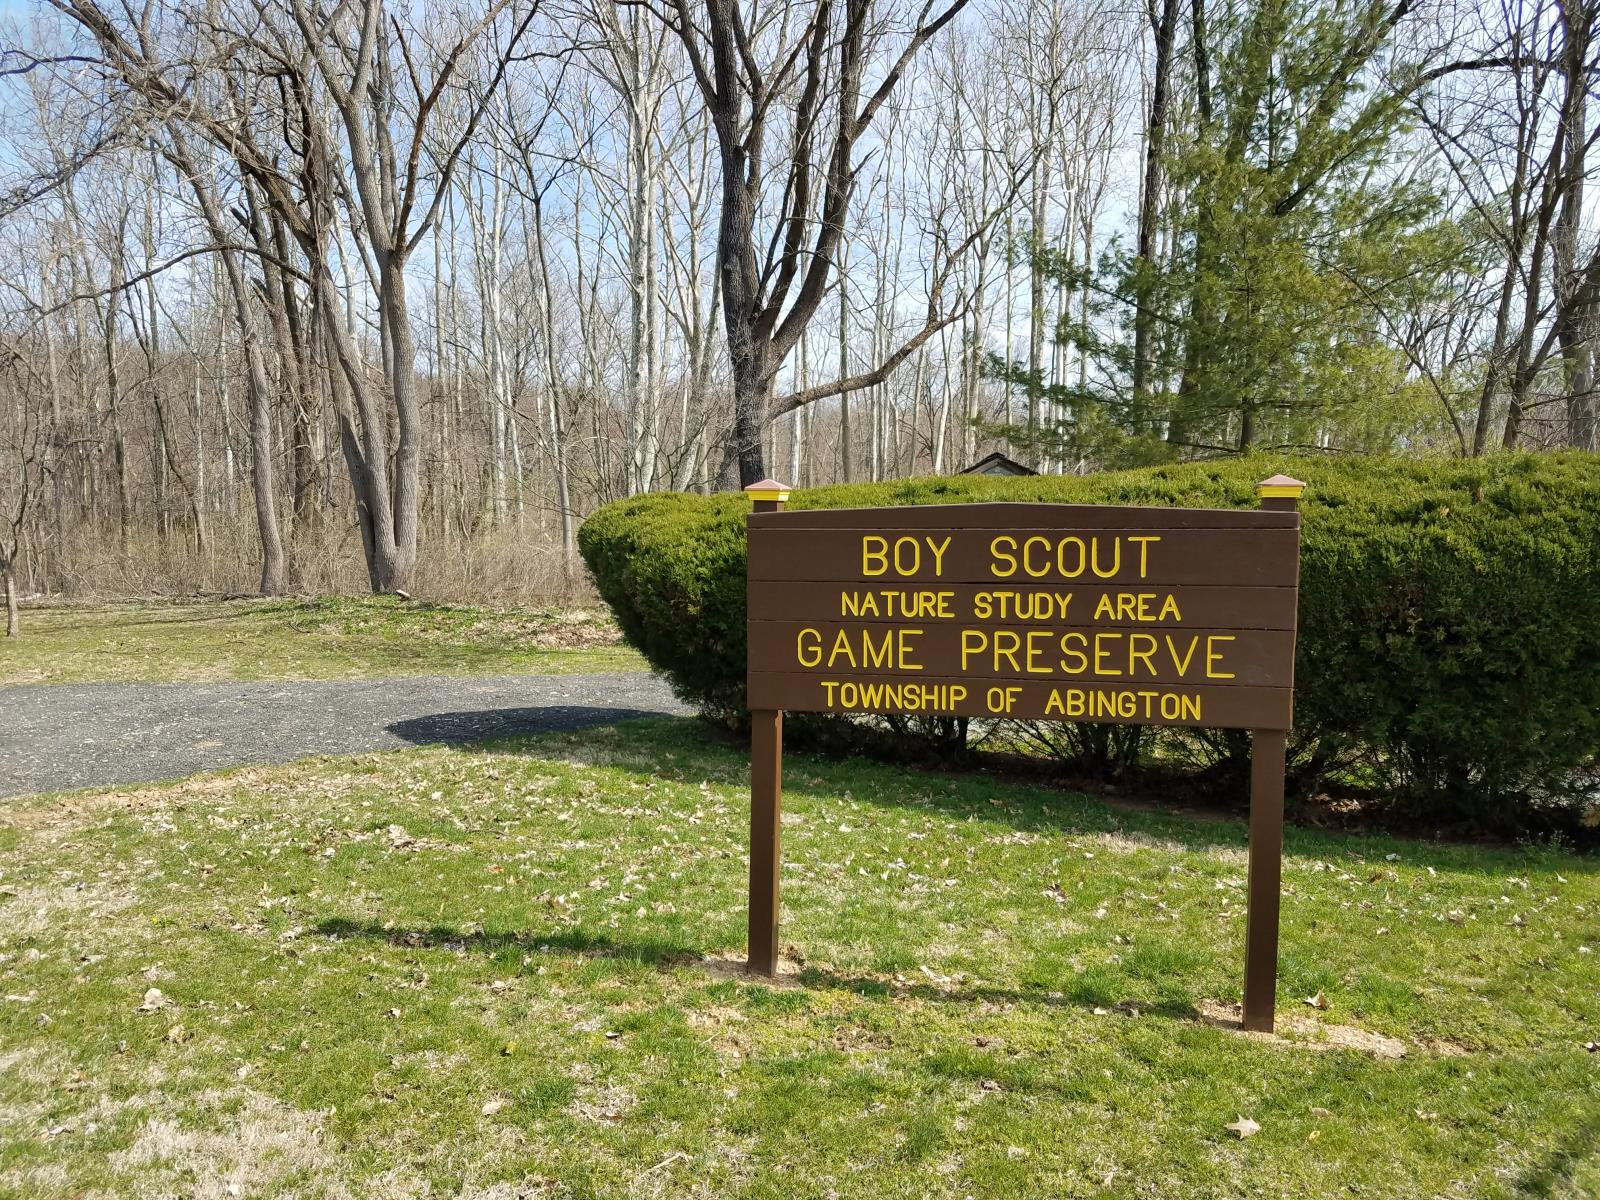 Boy Scout Game Preserve